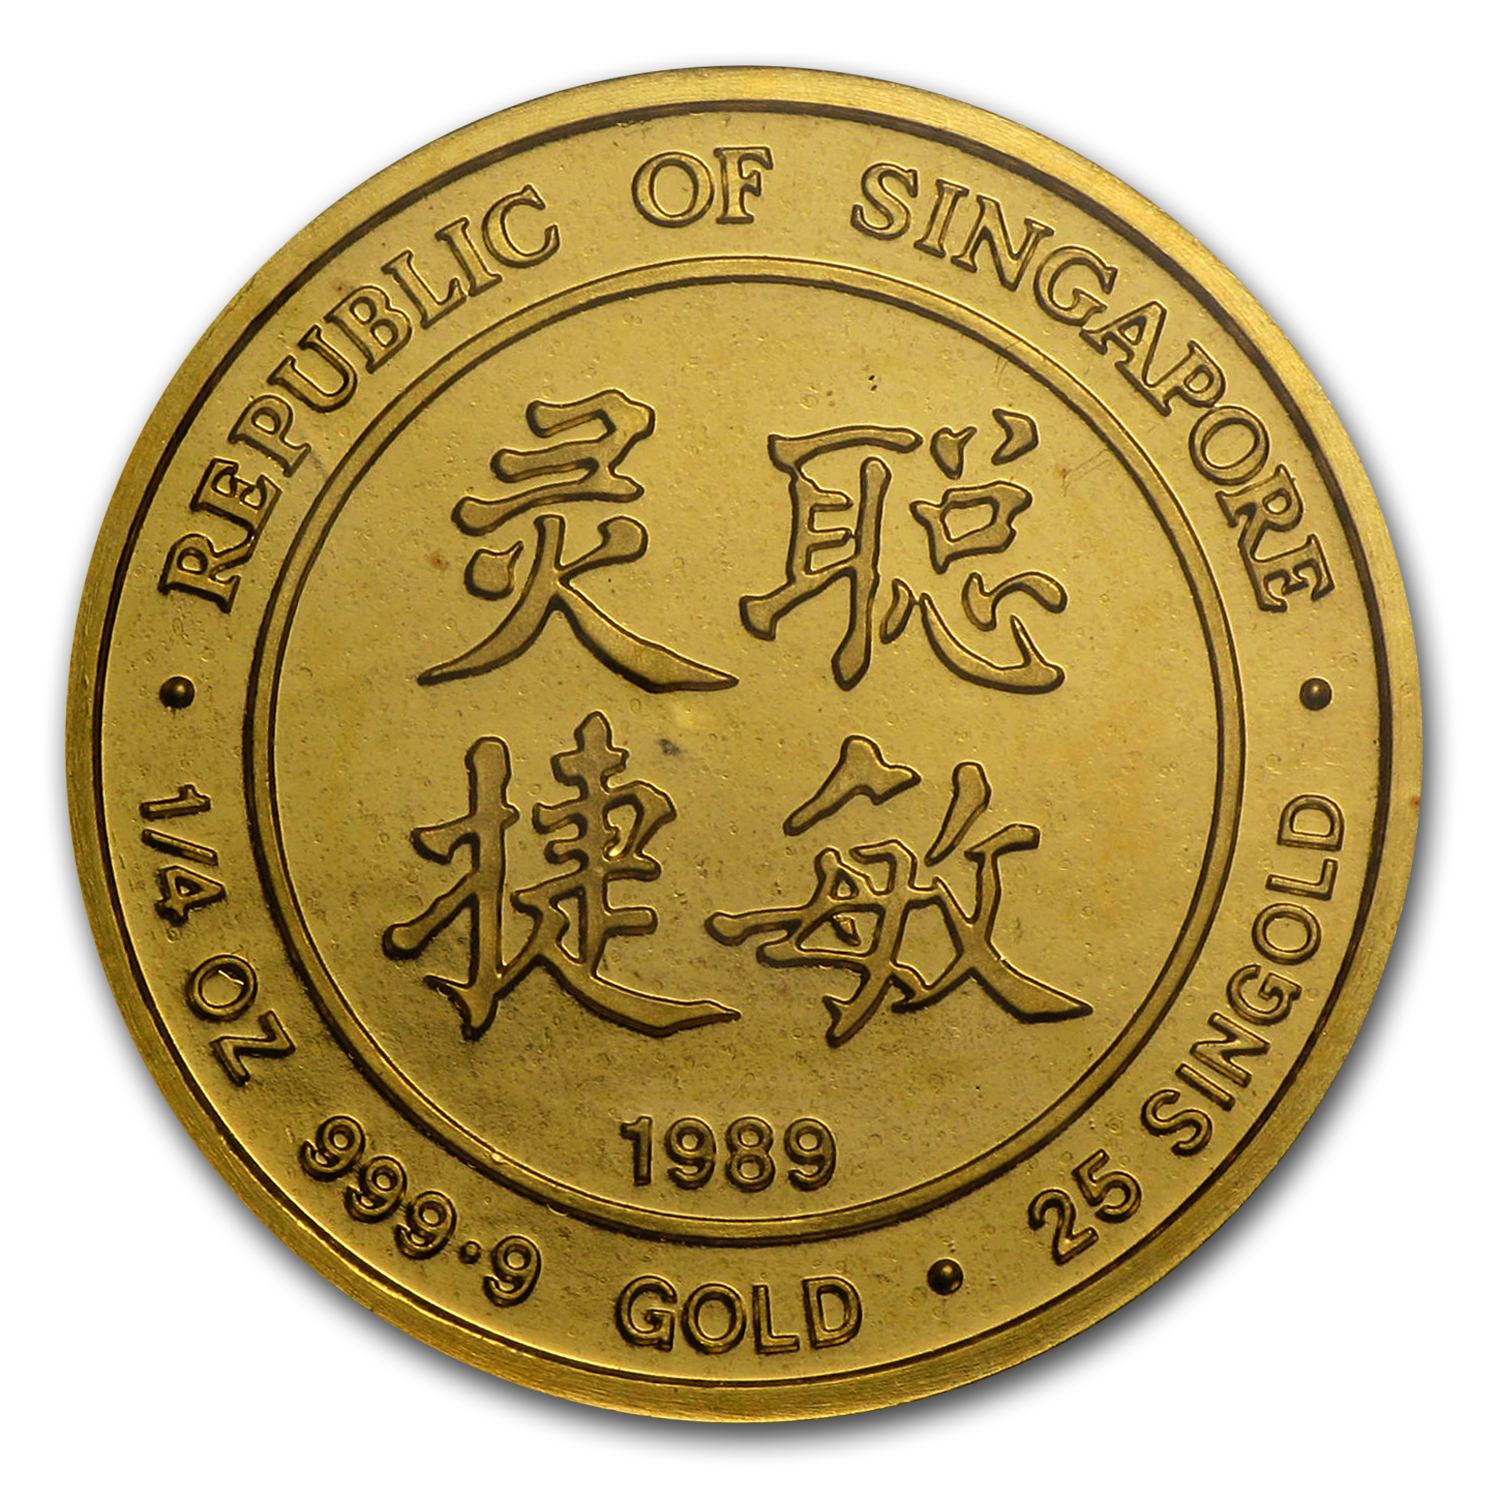 1989 Singapore 1/4 oz Proof Gold 25 Singold Snake